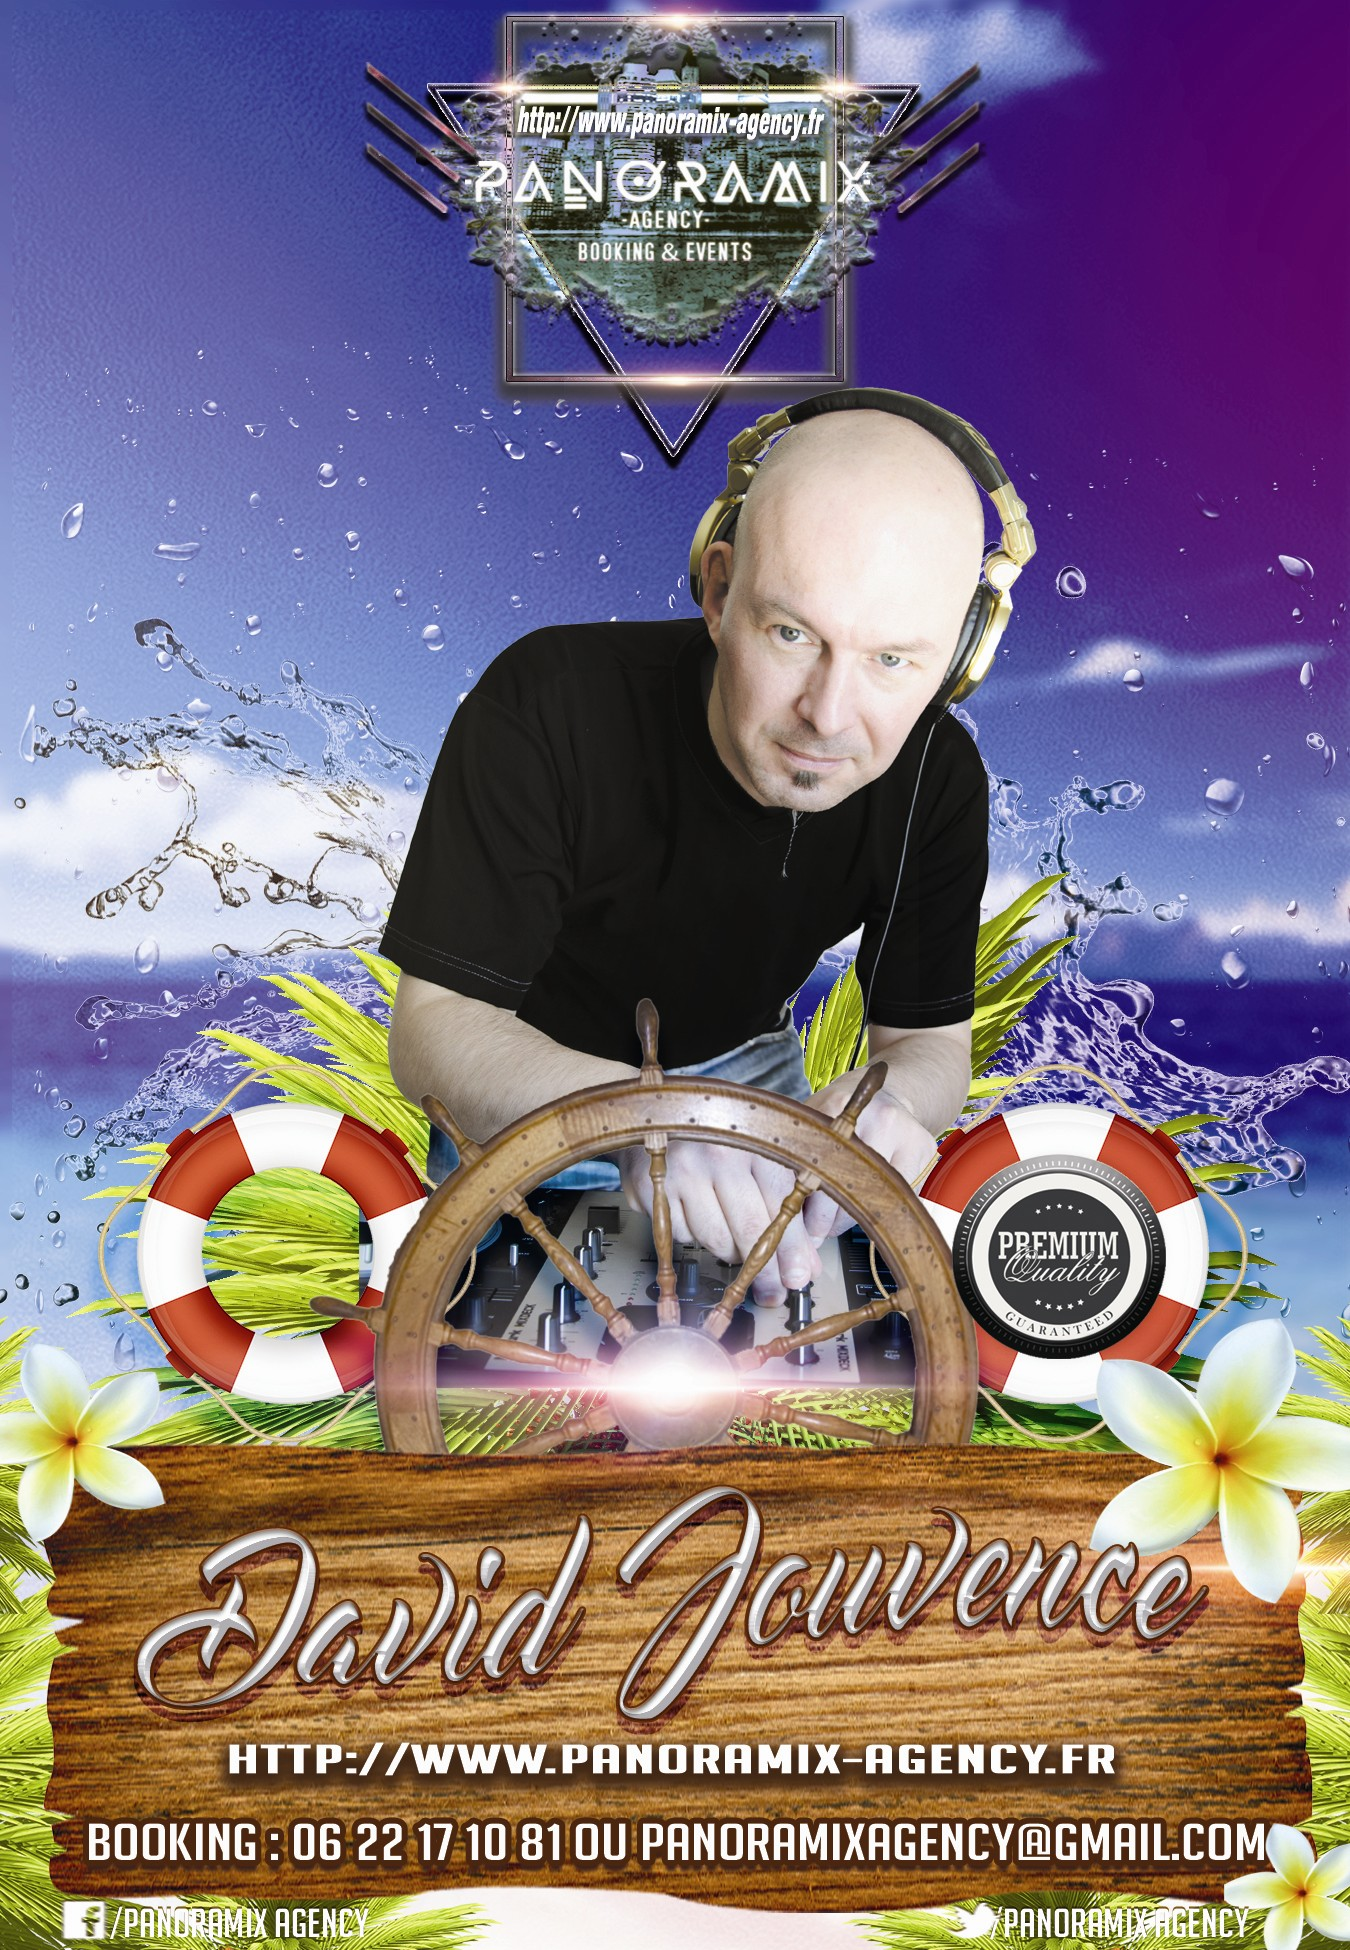 http://panoramix-radio-station.com/wp-content/uploads/2017/05/DAVID-JOUVENCE-.jpg